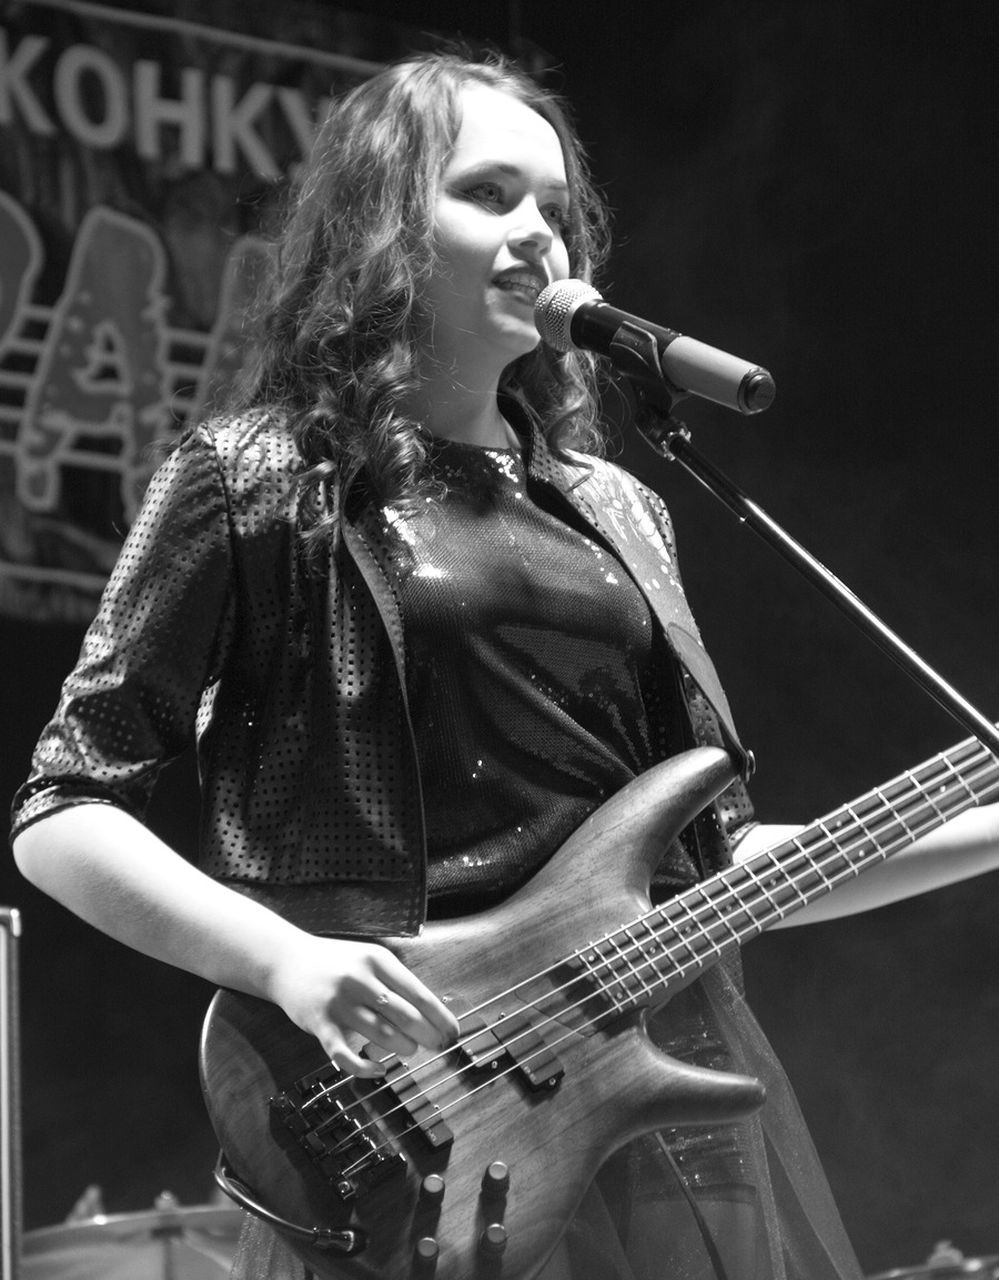 music, arts culture and entertainment, real people, one person, musical instrument, leisure activity, lifestyles, musician, standing, singing, performance, playing, stage - performance space, guitar, singer, microphone, rock musician, outdoors, electric guitar, young women, young adult, day, people